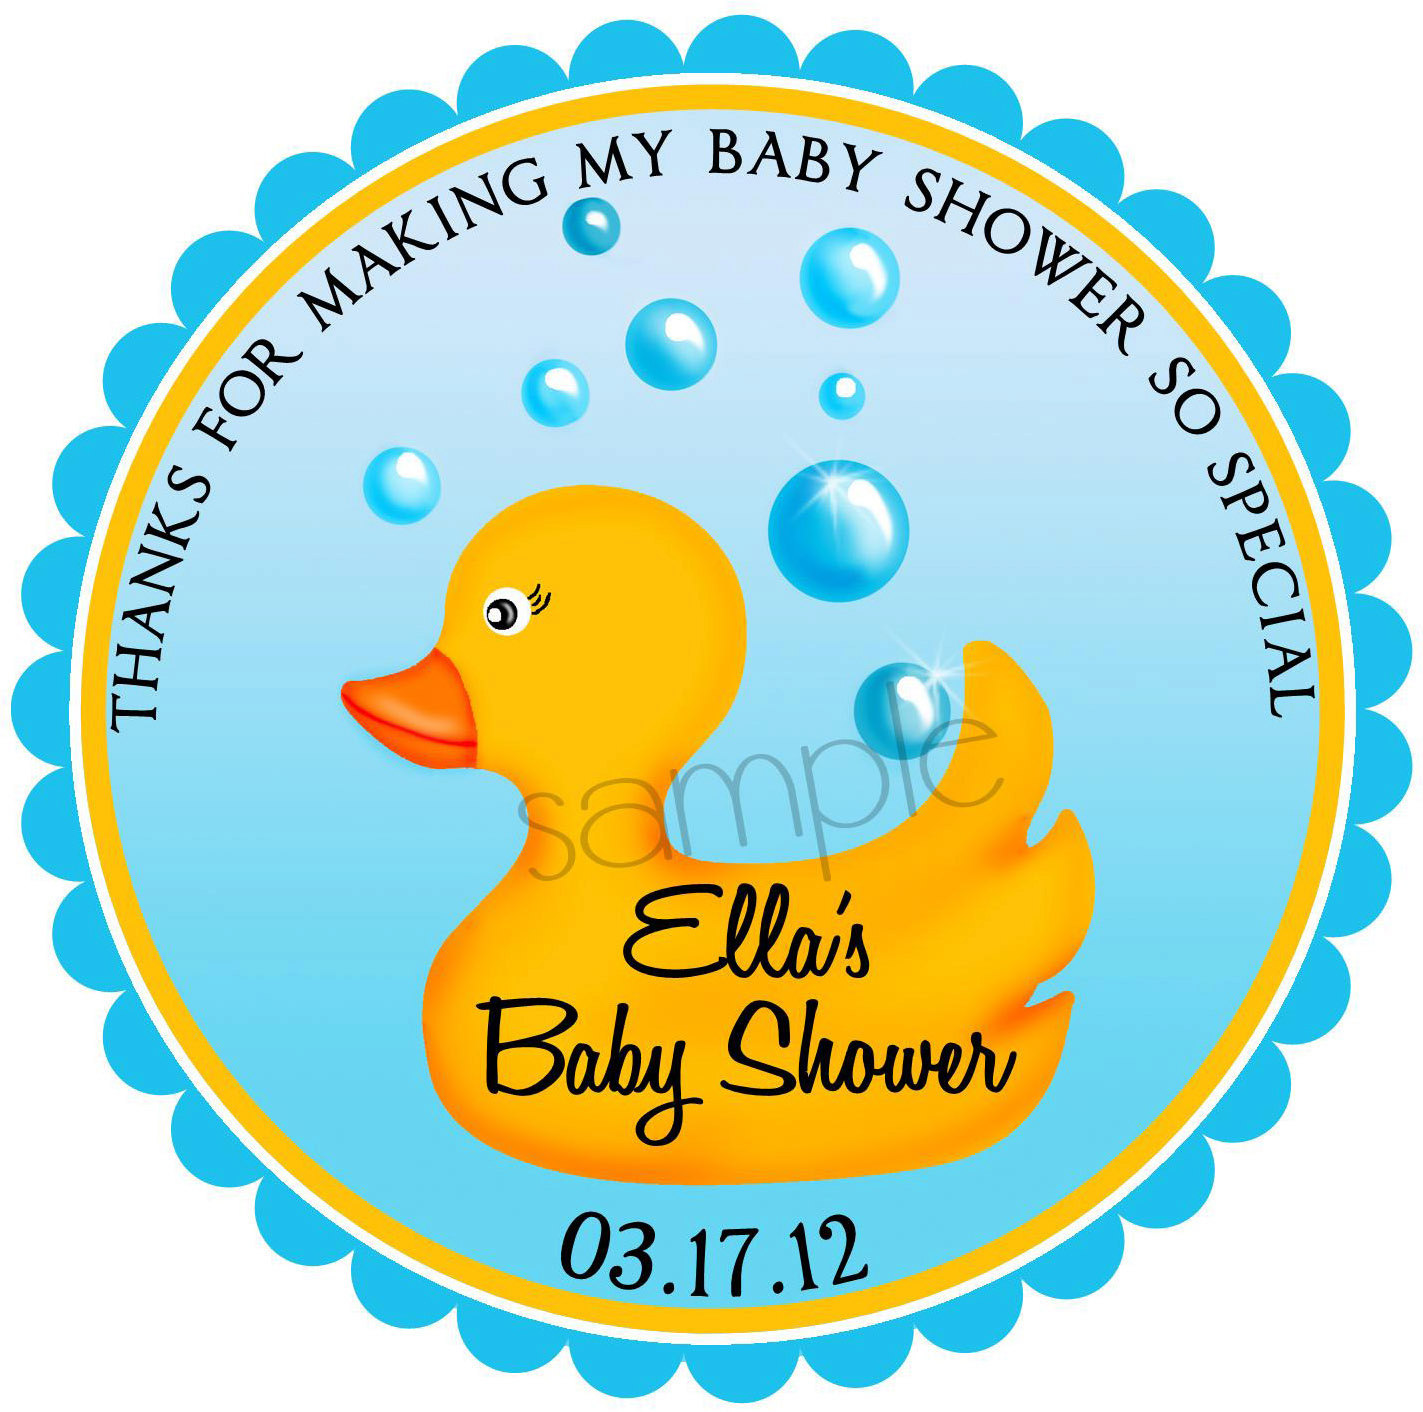 Rubber Ducky Stickers Rubber duck Baby Shower stickers